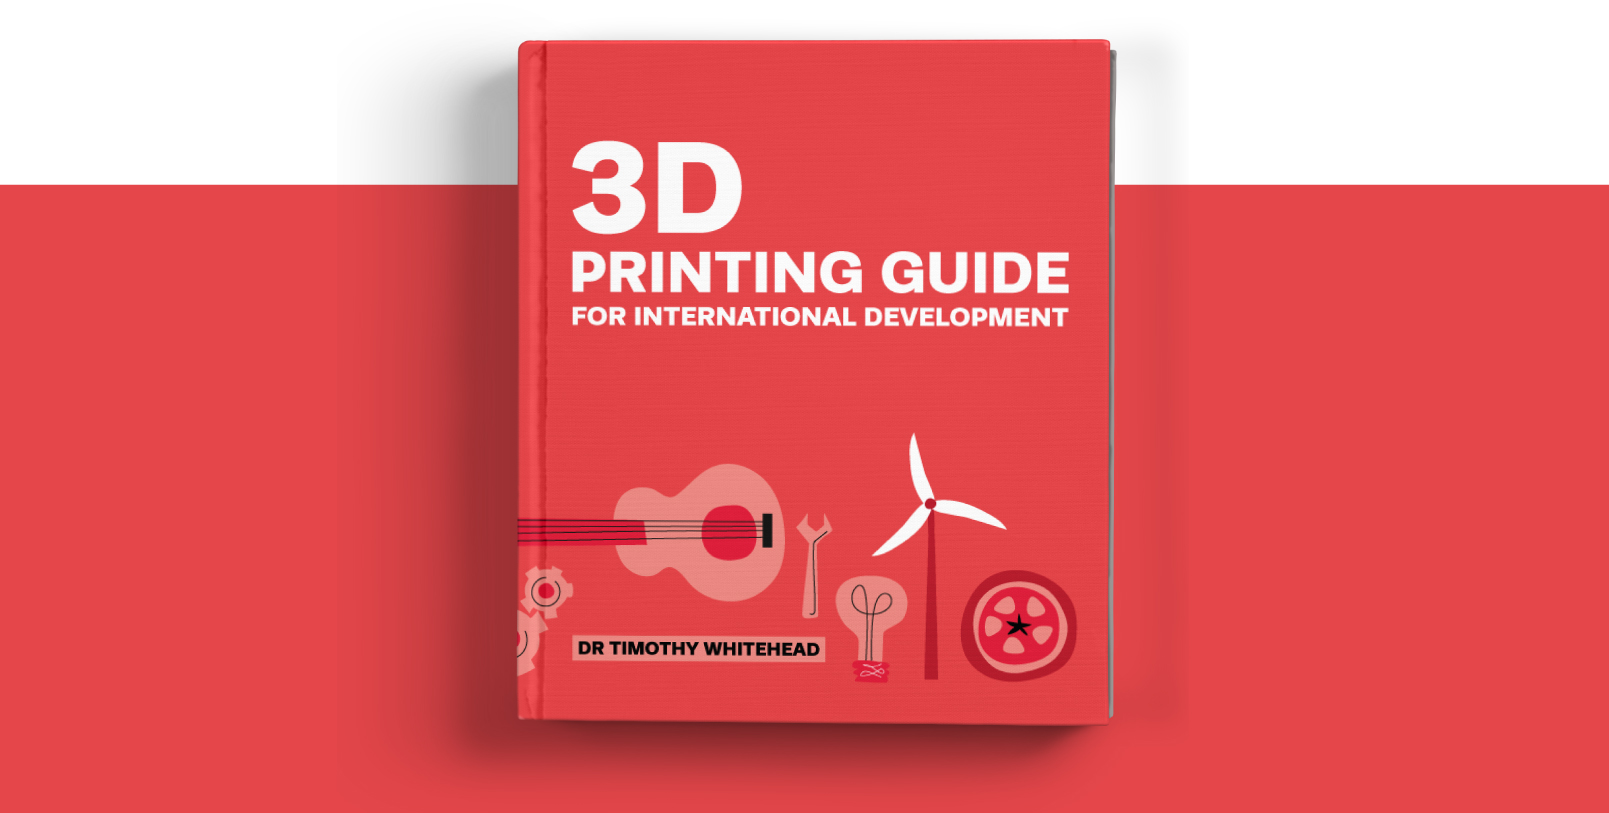 3D printing guide by Timothy Whitehead